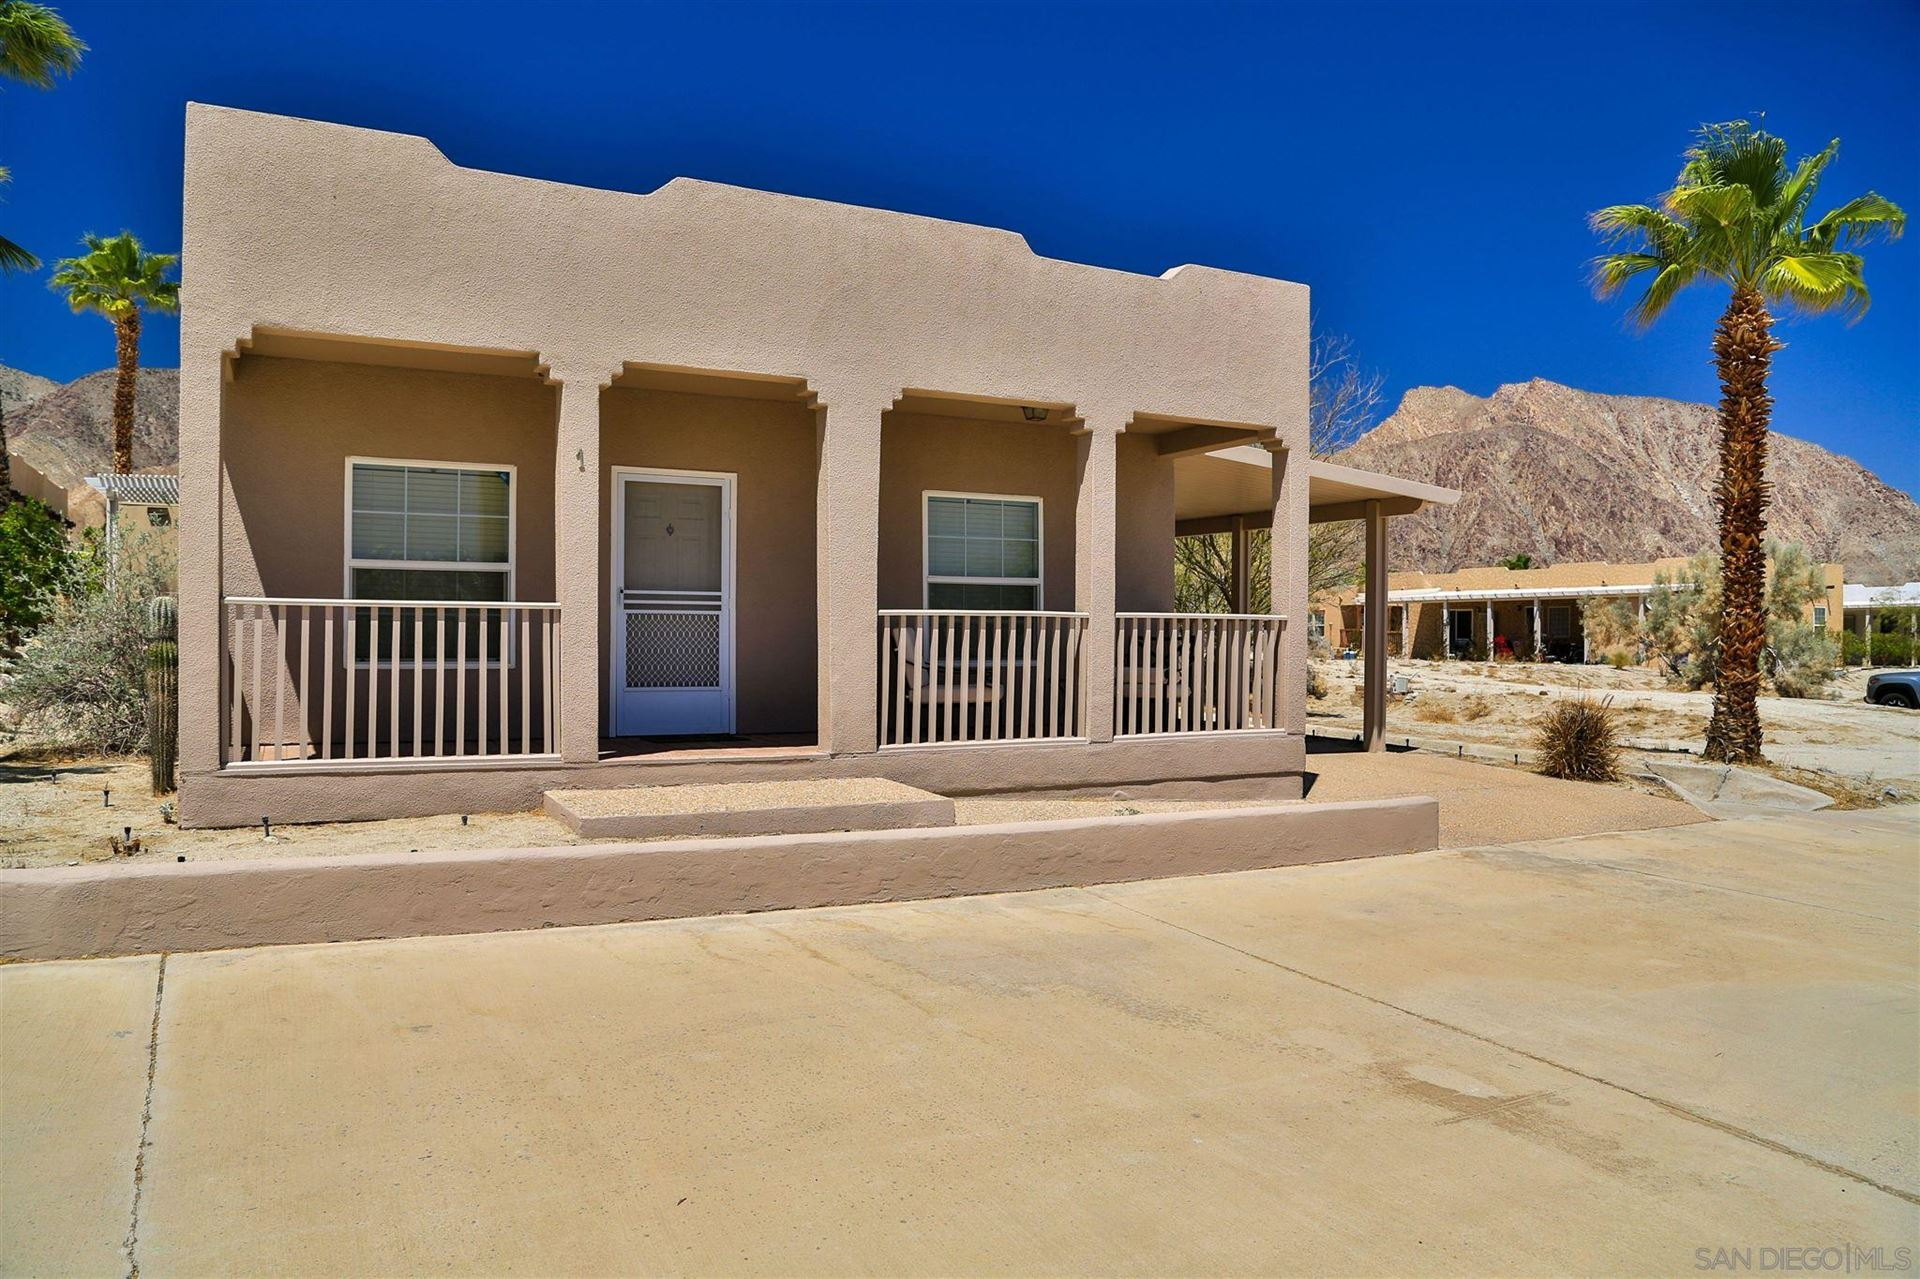 Photo of 330 Palm Canyon Dr #1, Borrego Springs, CA 92004 (MLS # 210012030)